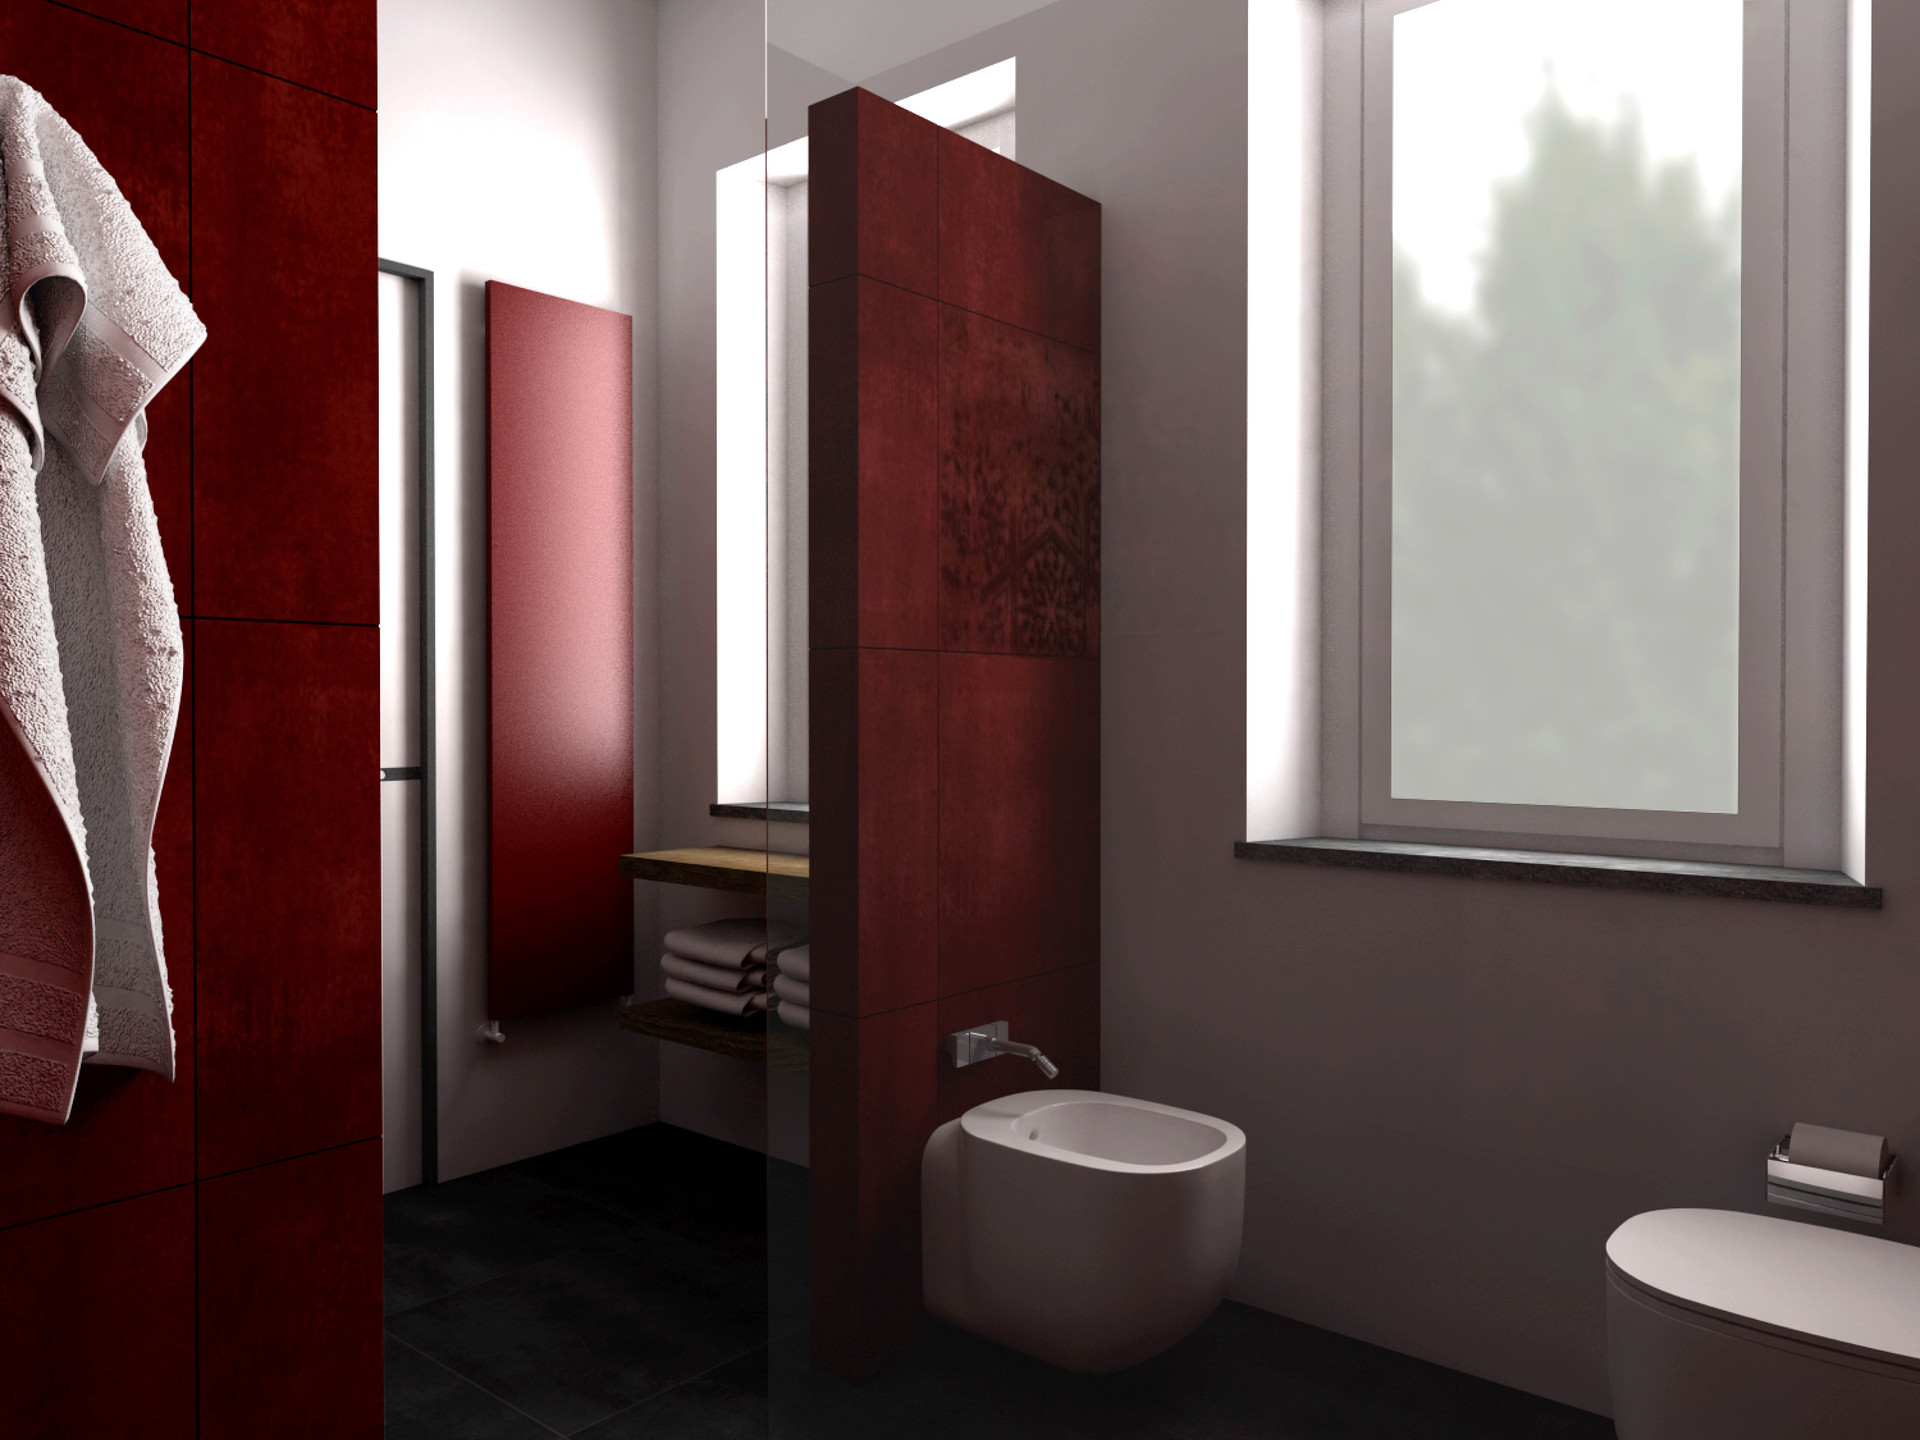 bagno (camera da letto) I bathroom (bedroom)